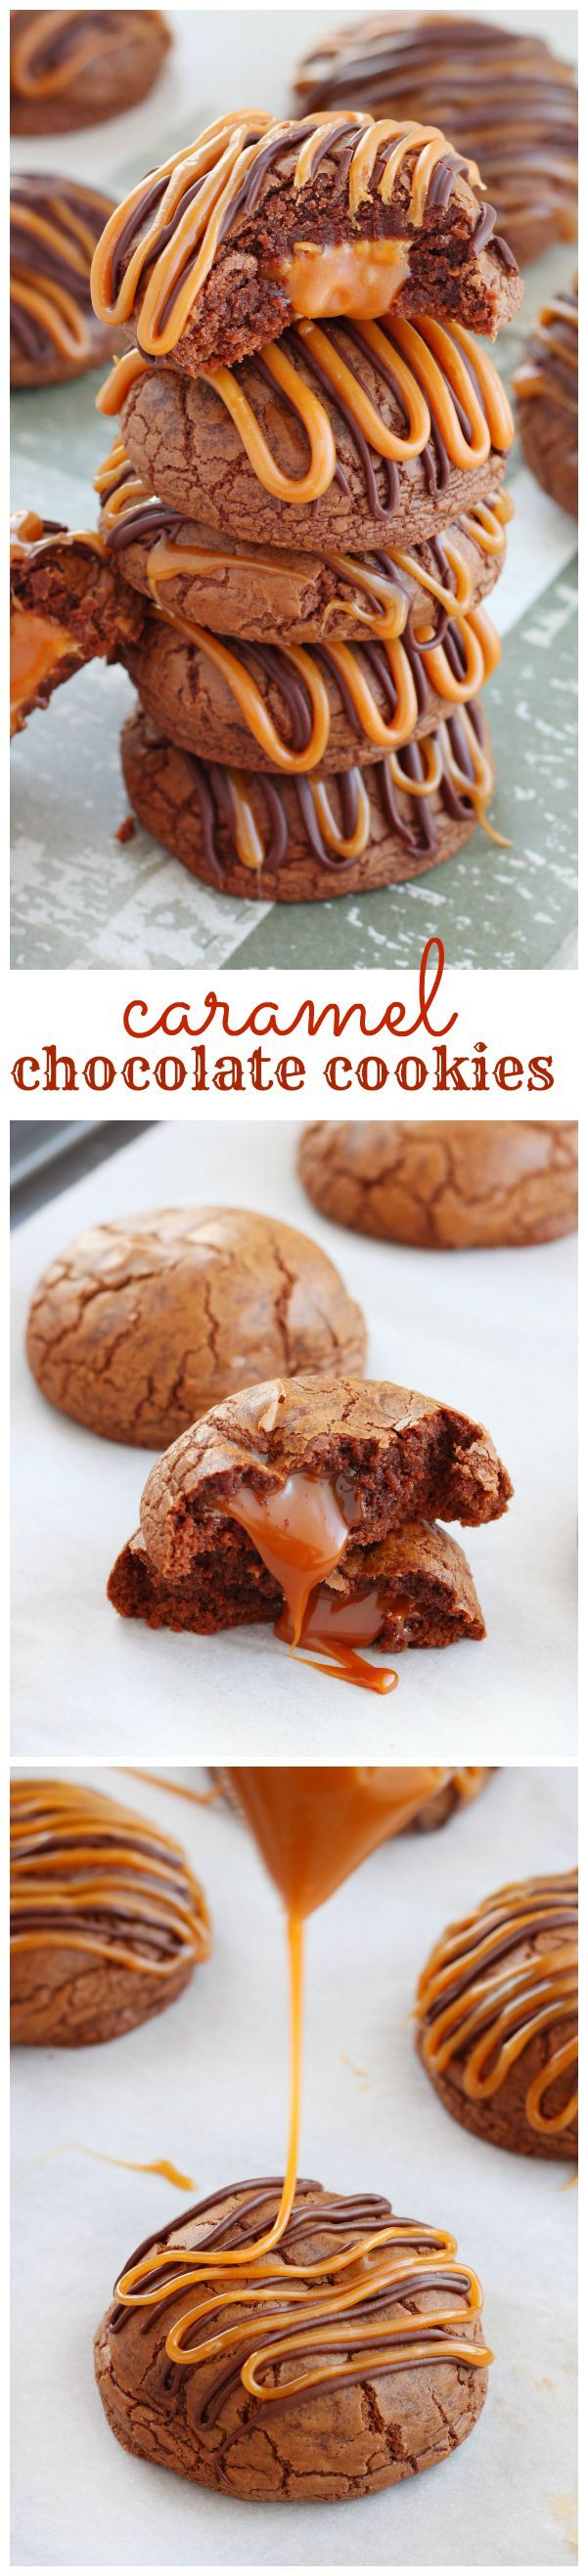 Irresistible rich chocolate cookies stuffed with gooey caramels and finished with a drizzle of caramel and melted chocolate. Deliciousness in every bite!